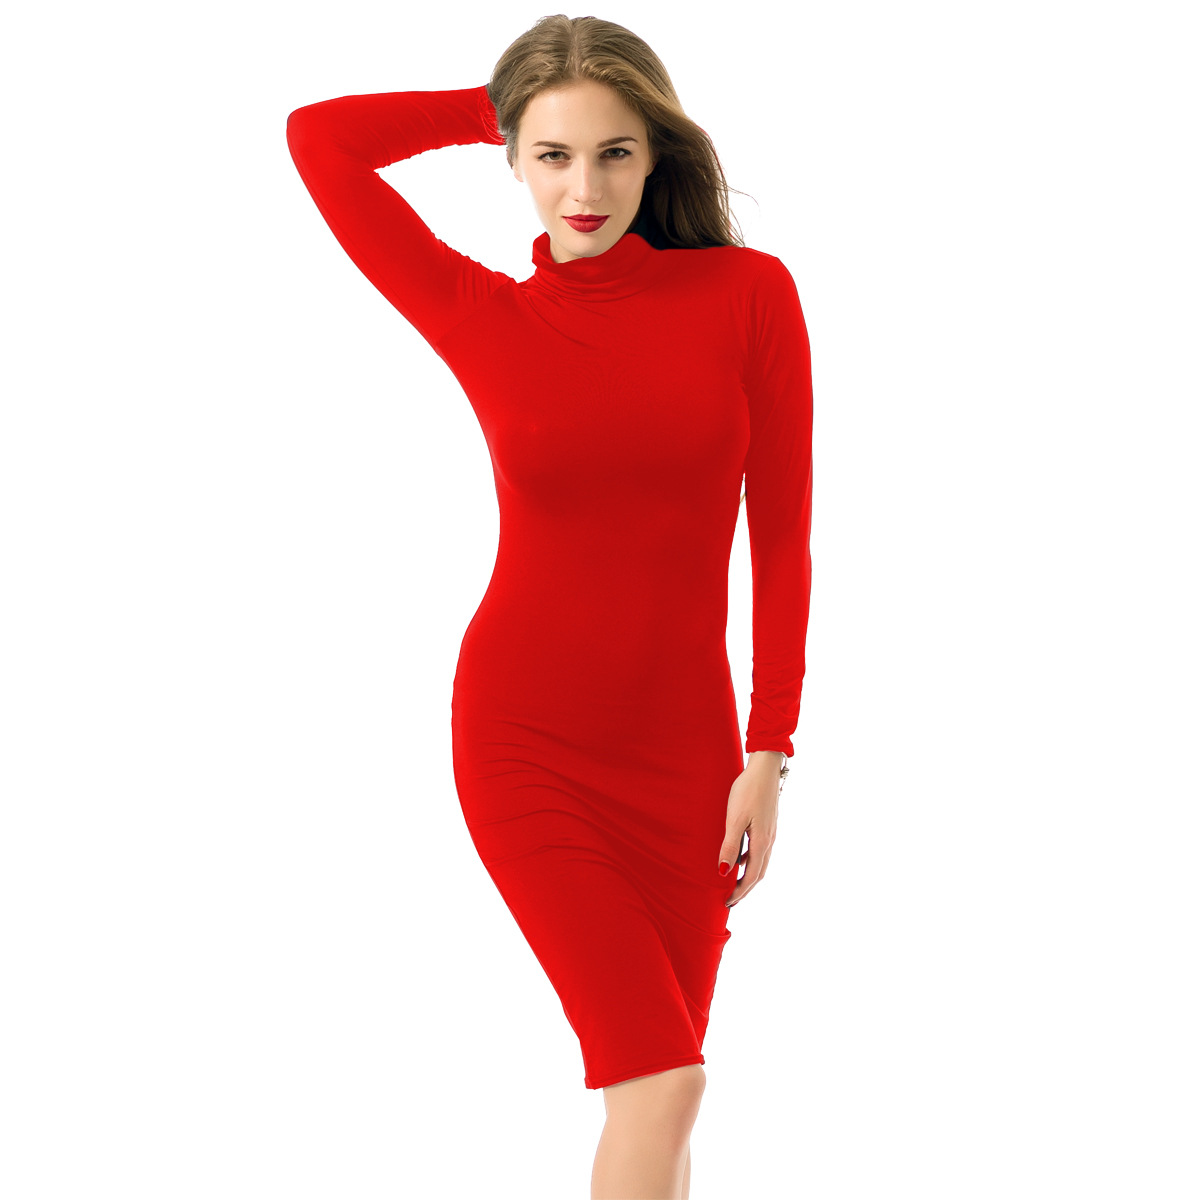 VD8046 red Amazon /wish hot sale